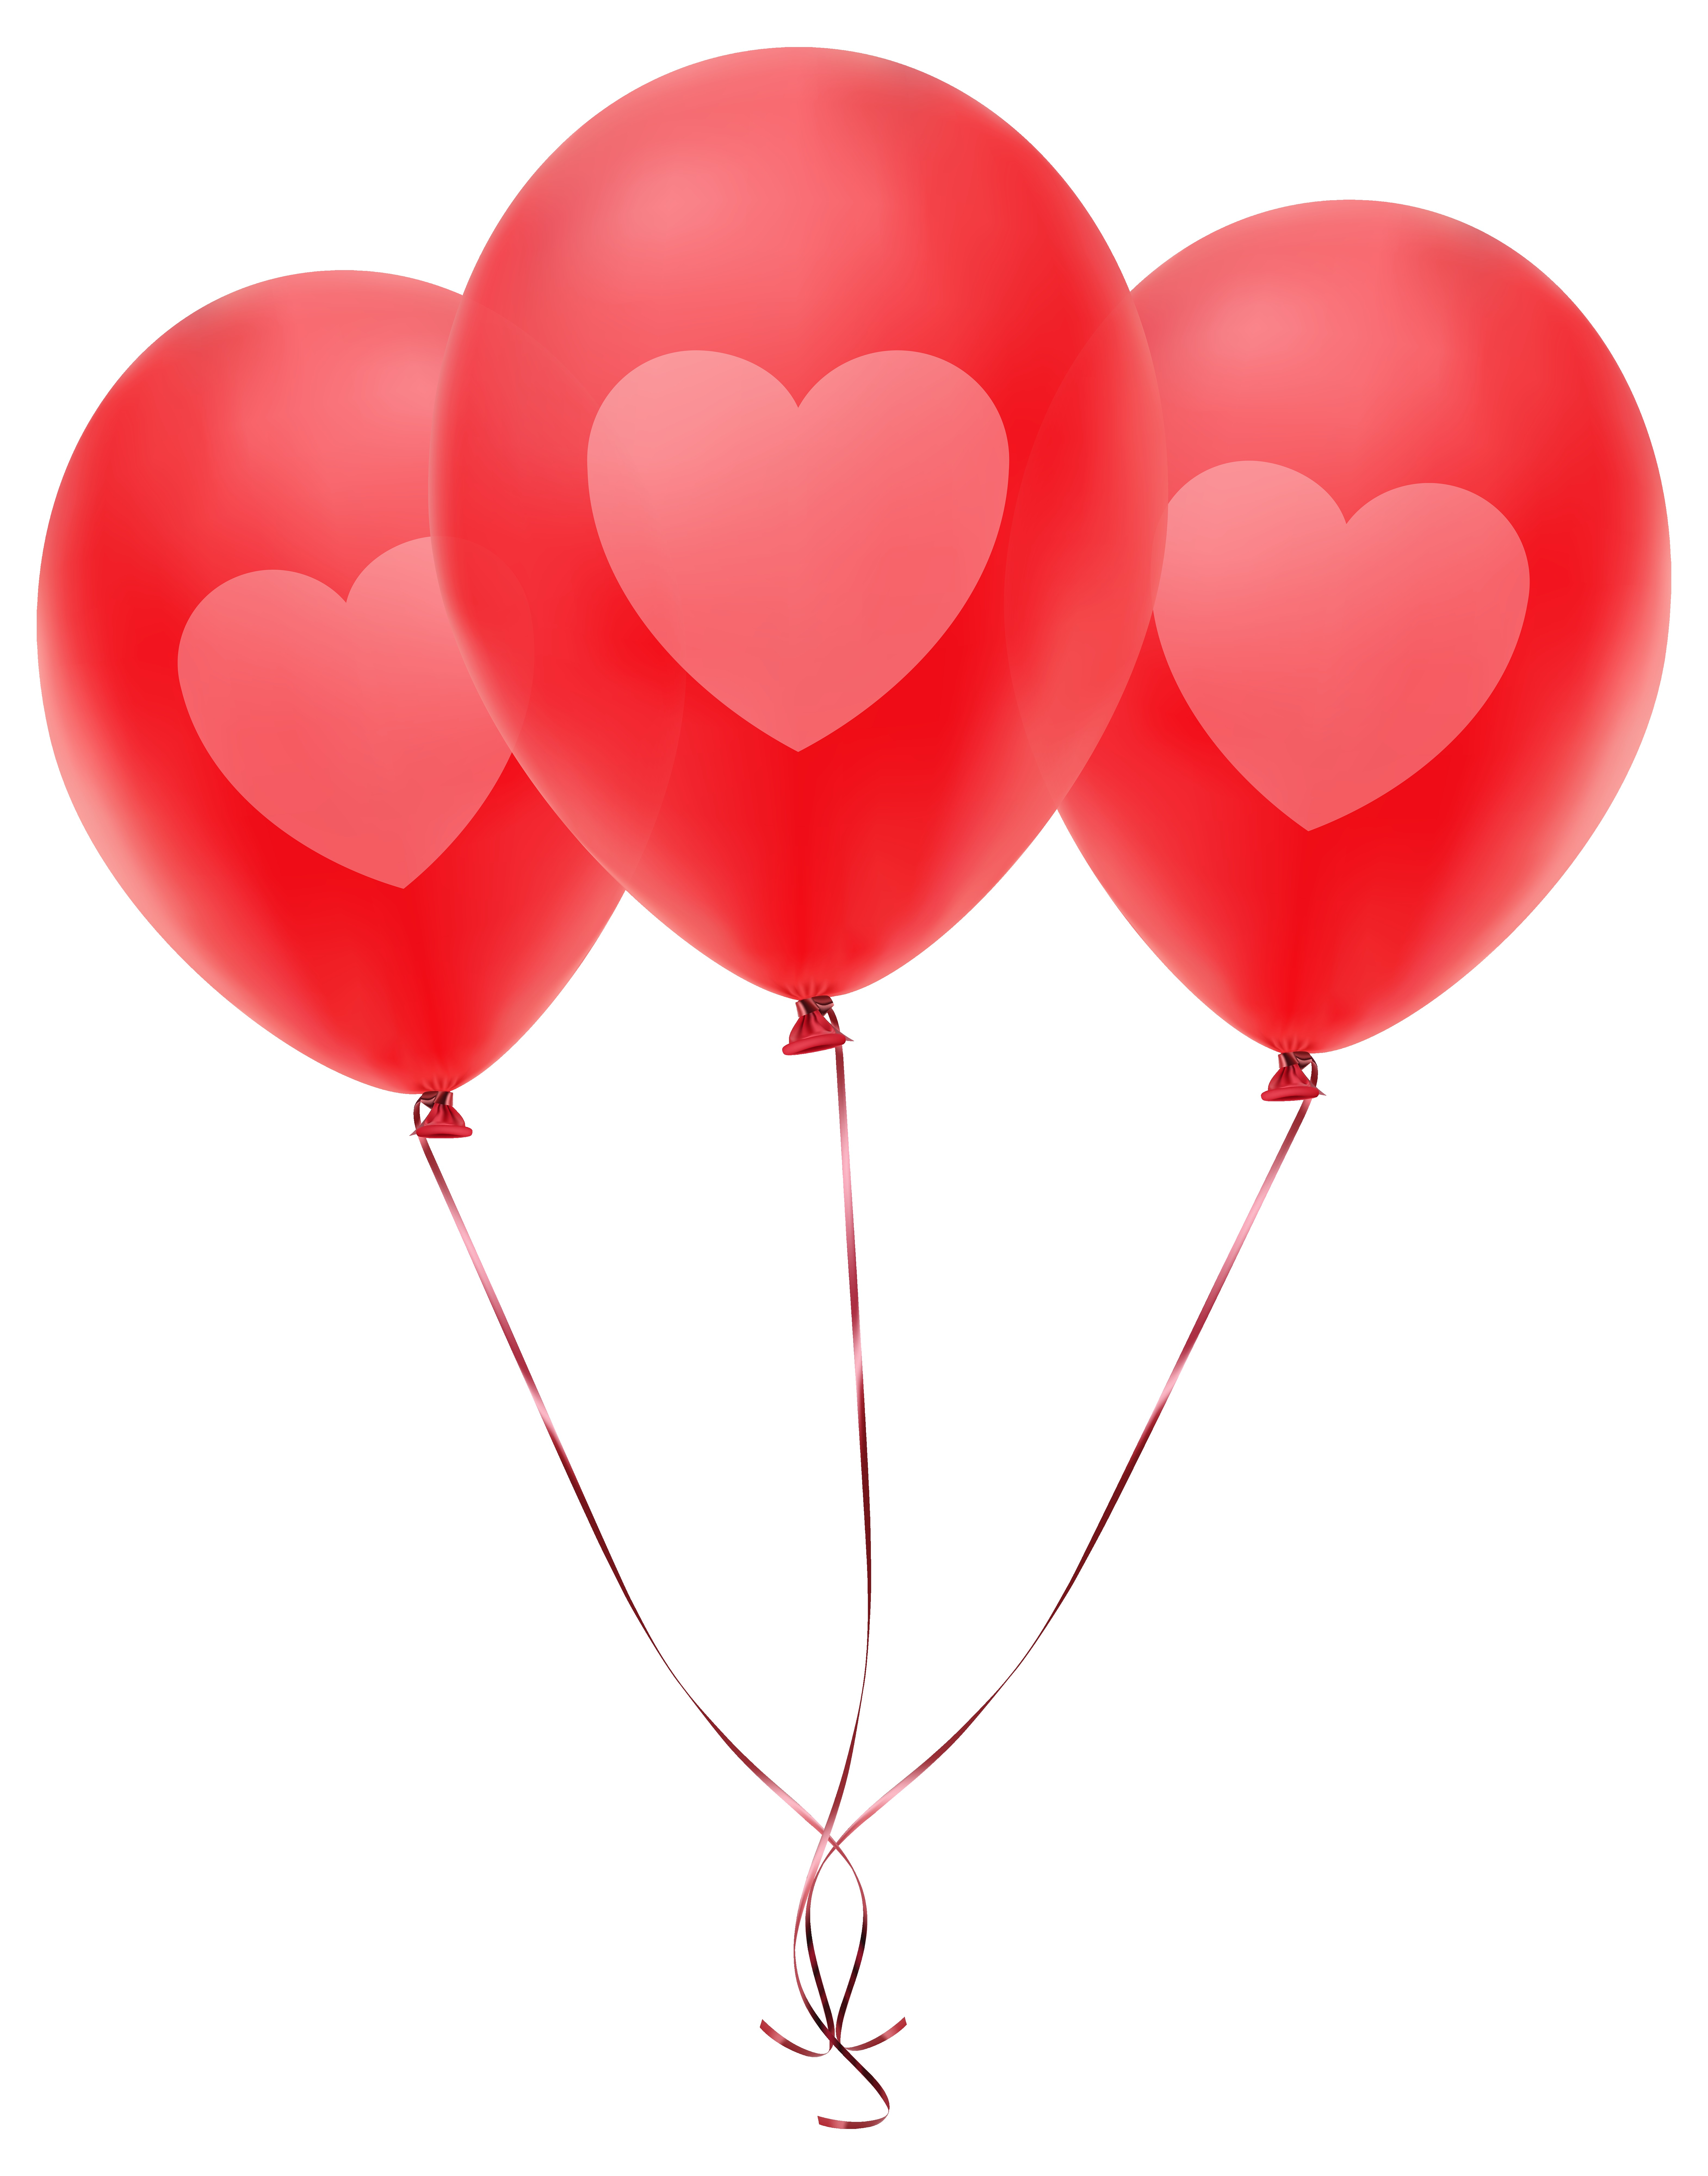 6280x8000 Red Balloon Heart Design Single Transparent Clip Art For Alluring